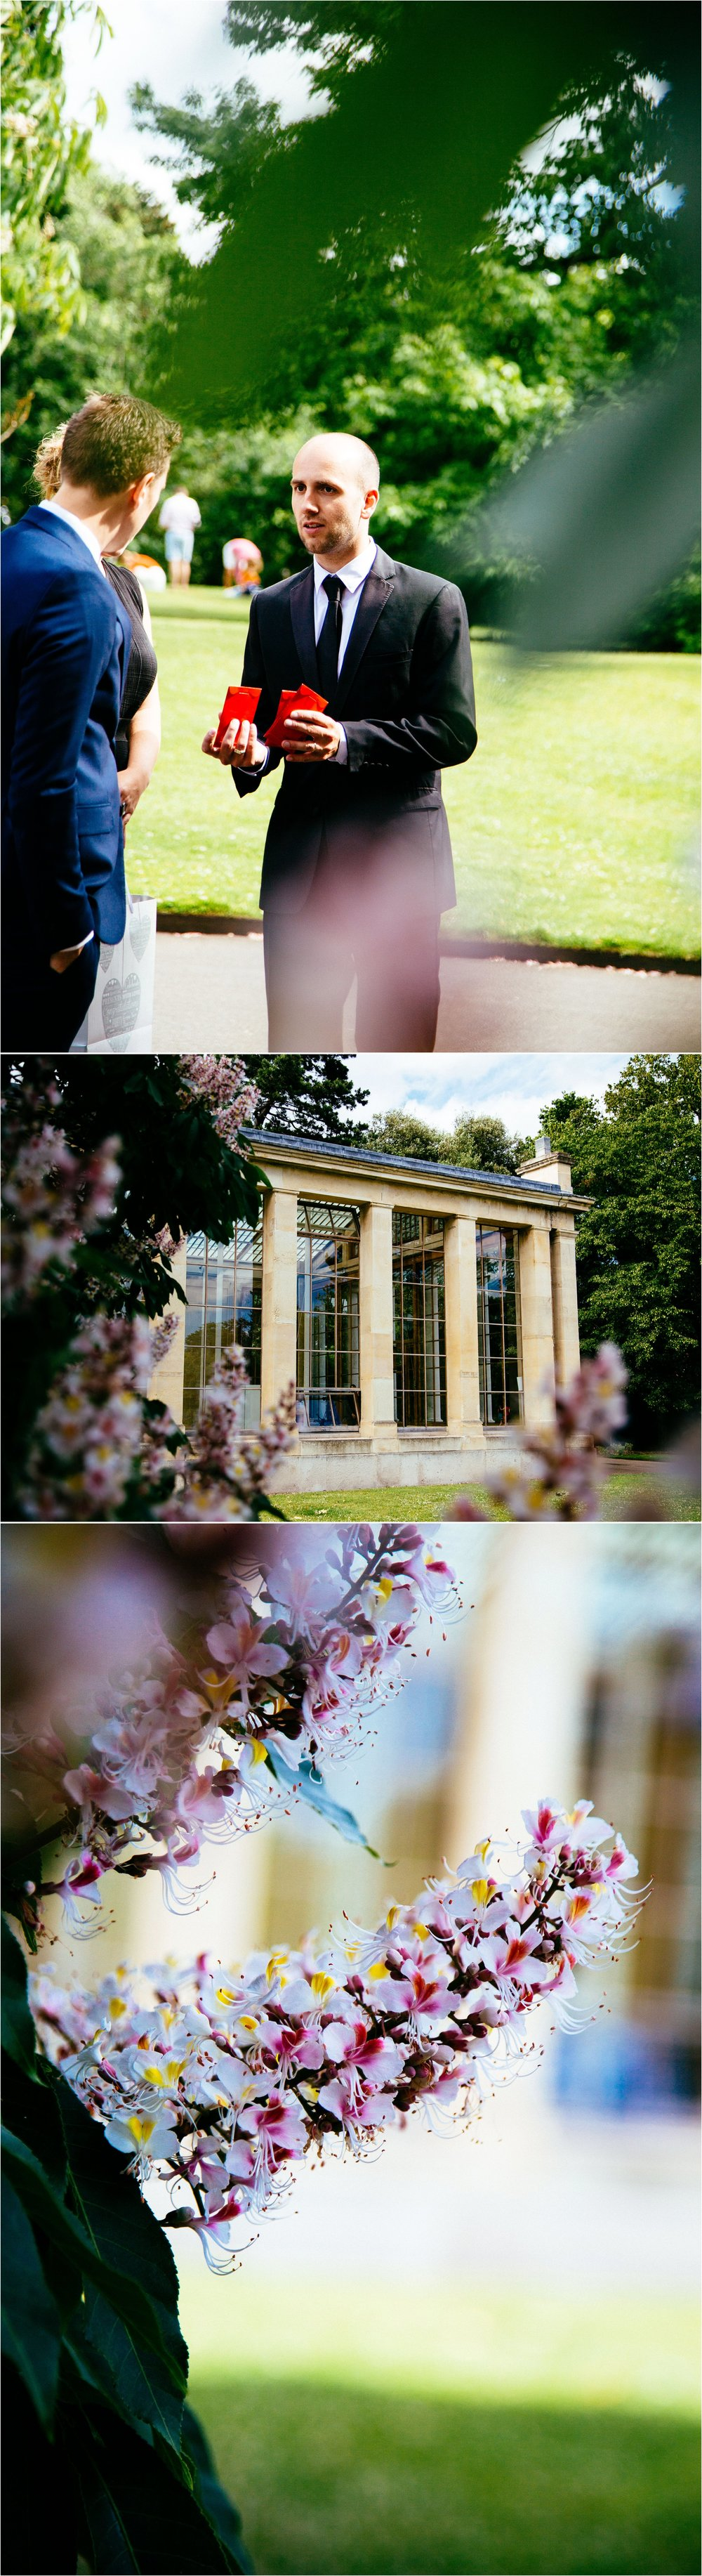 Kew Garden wedding photographer_0110.jpg